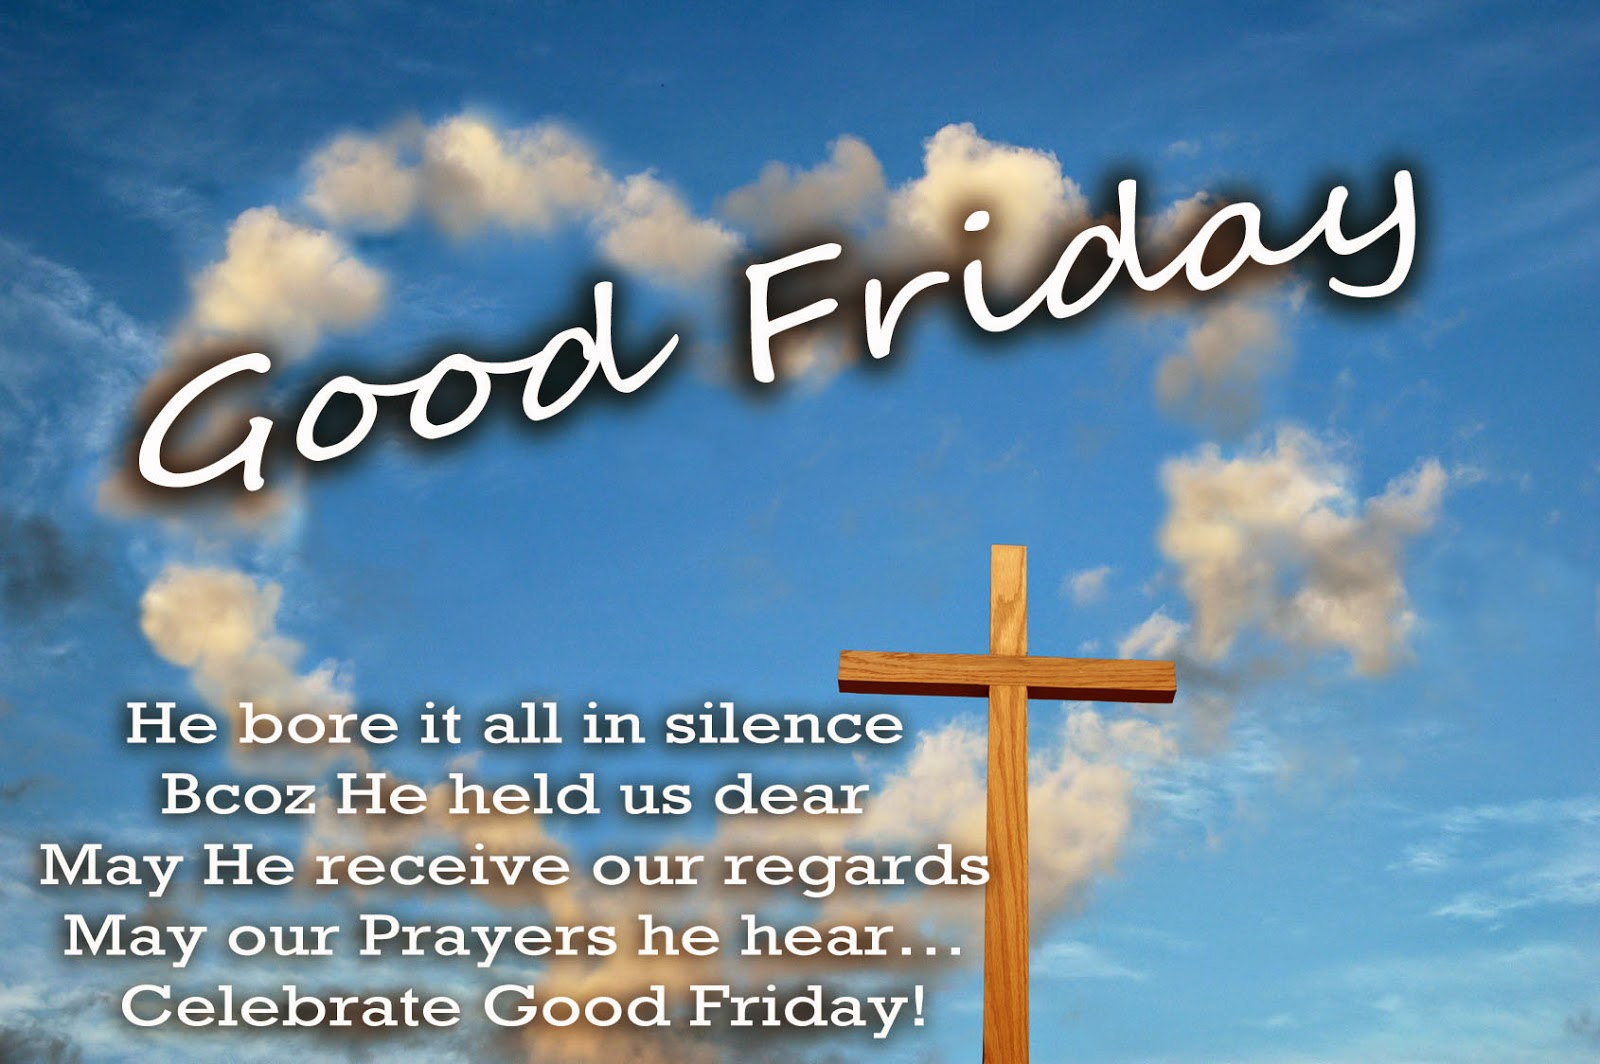 Advance good friday wallpaper with quotes 2017 18 for boyfriend best good friday wallpaper with quotes wishes kristyandbryce Choice Image